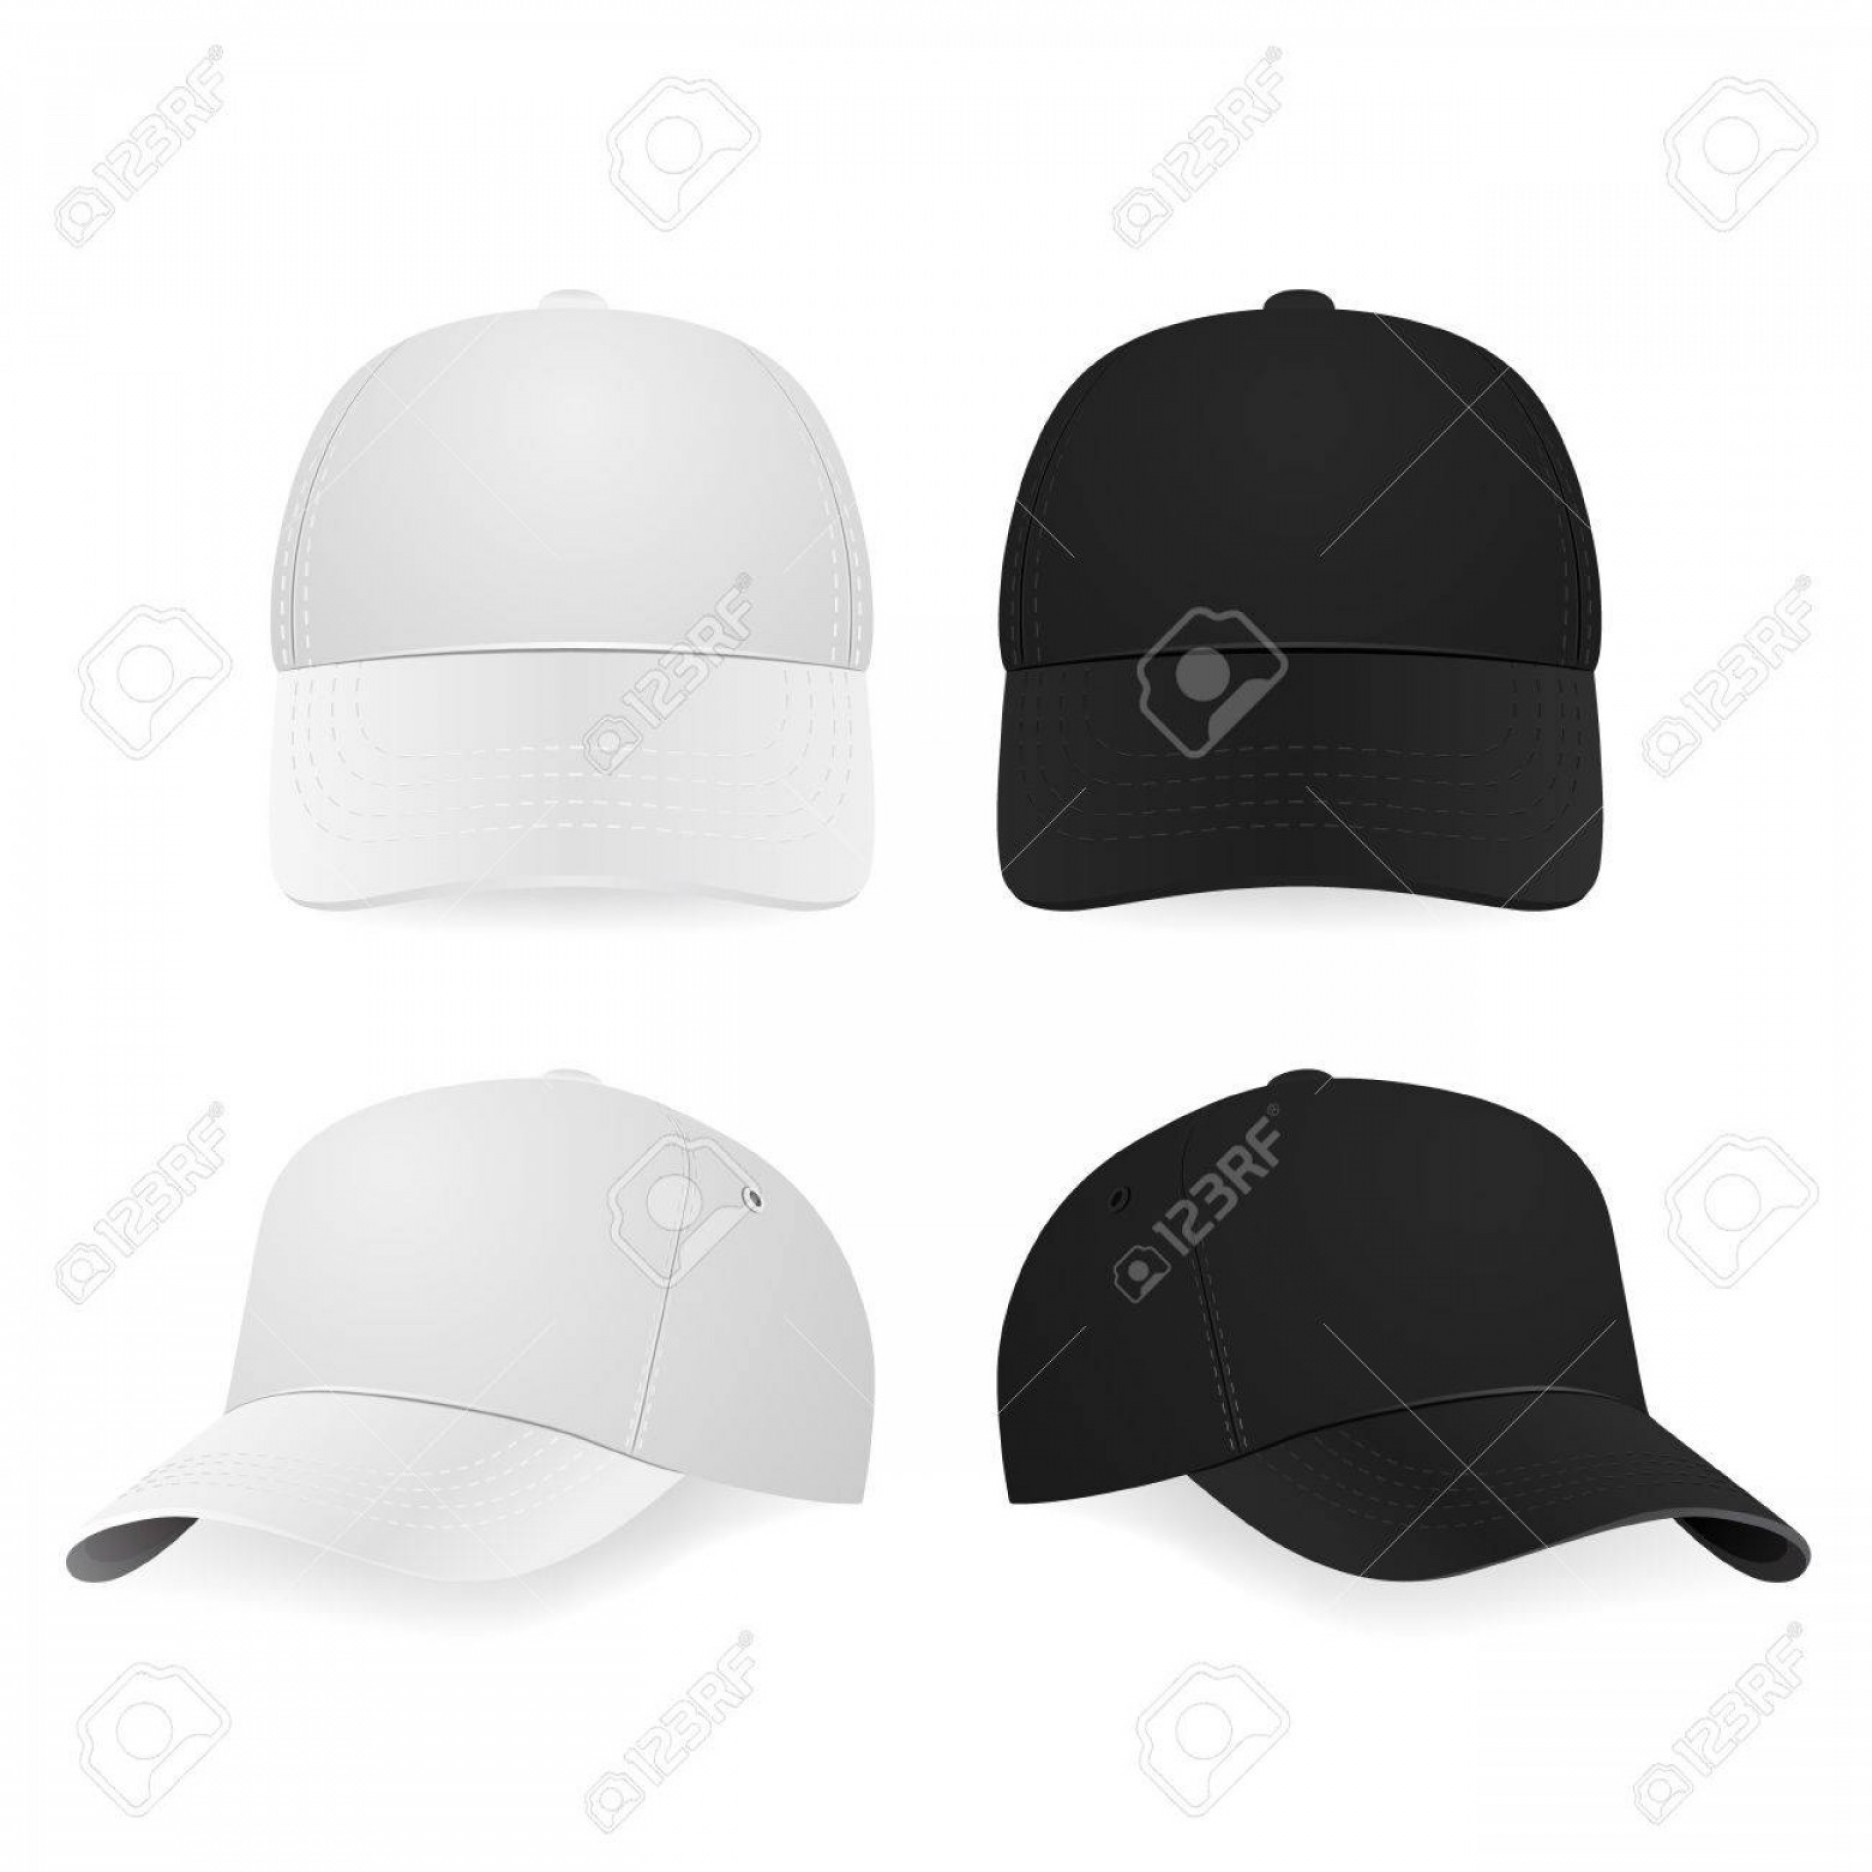 Black Baseball Cap Vector: Photostock Vector Set Of Two Realistic White And Black Baseball Caps Isolated On White Background Vector Illustration